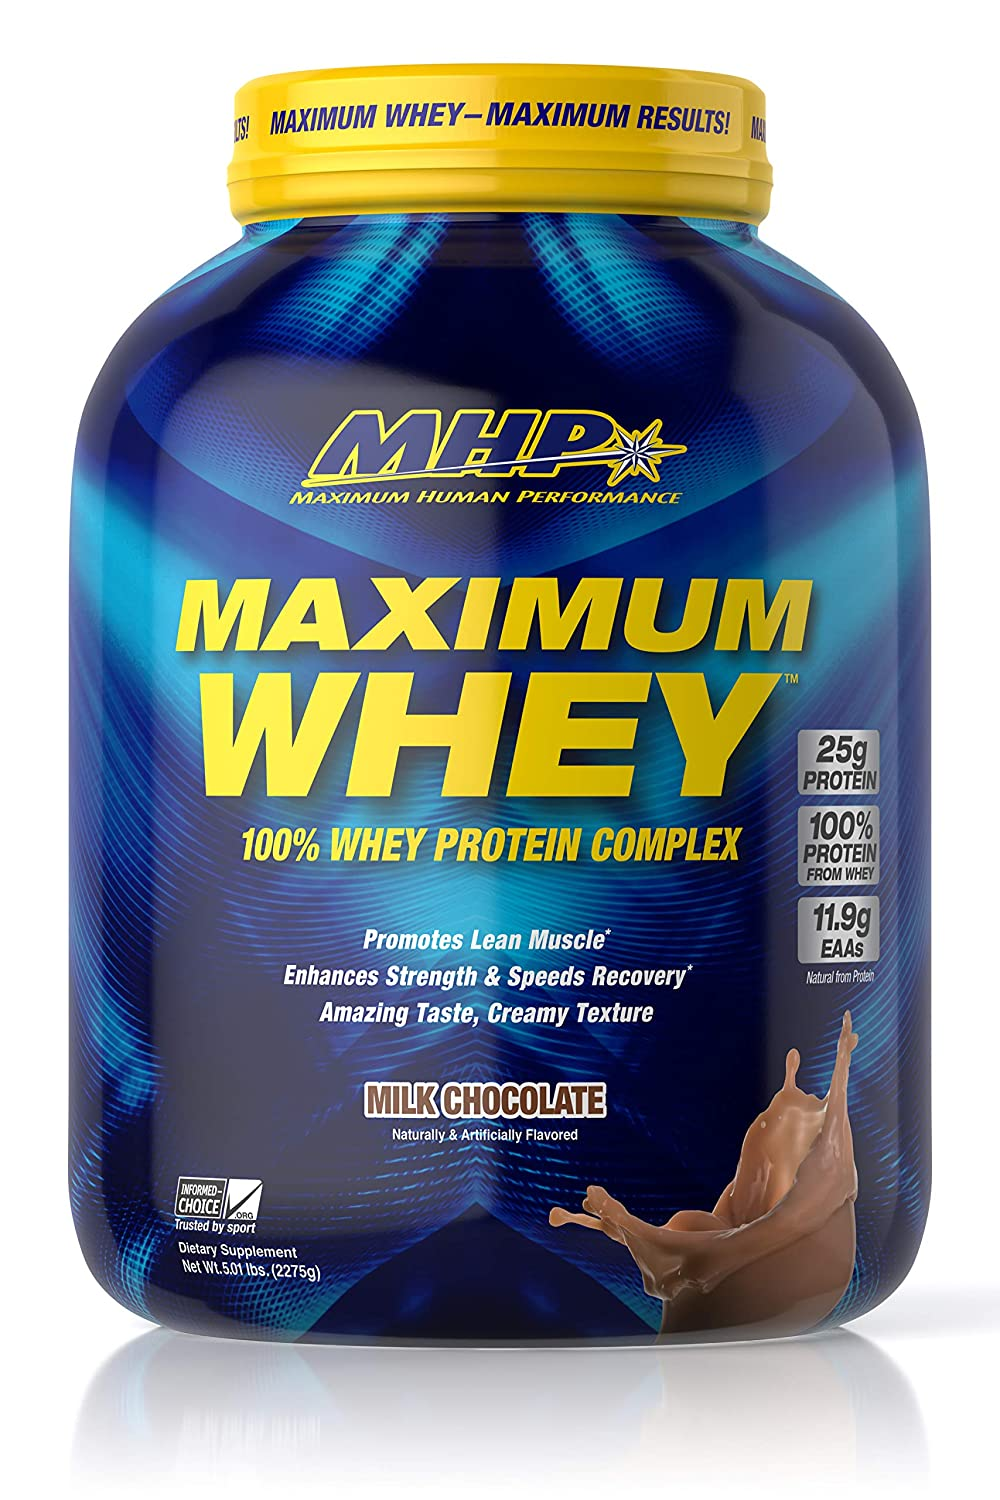 MHP Maximum Whey Protein, 25g Fast Acting Delicious Tasting Protein, Enhaces Strength Speeds Recovery, Milk Chocolate, 50 Servings